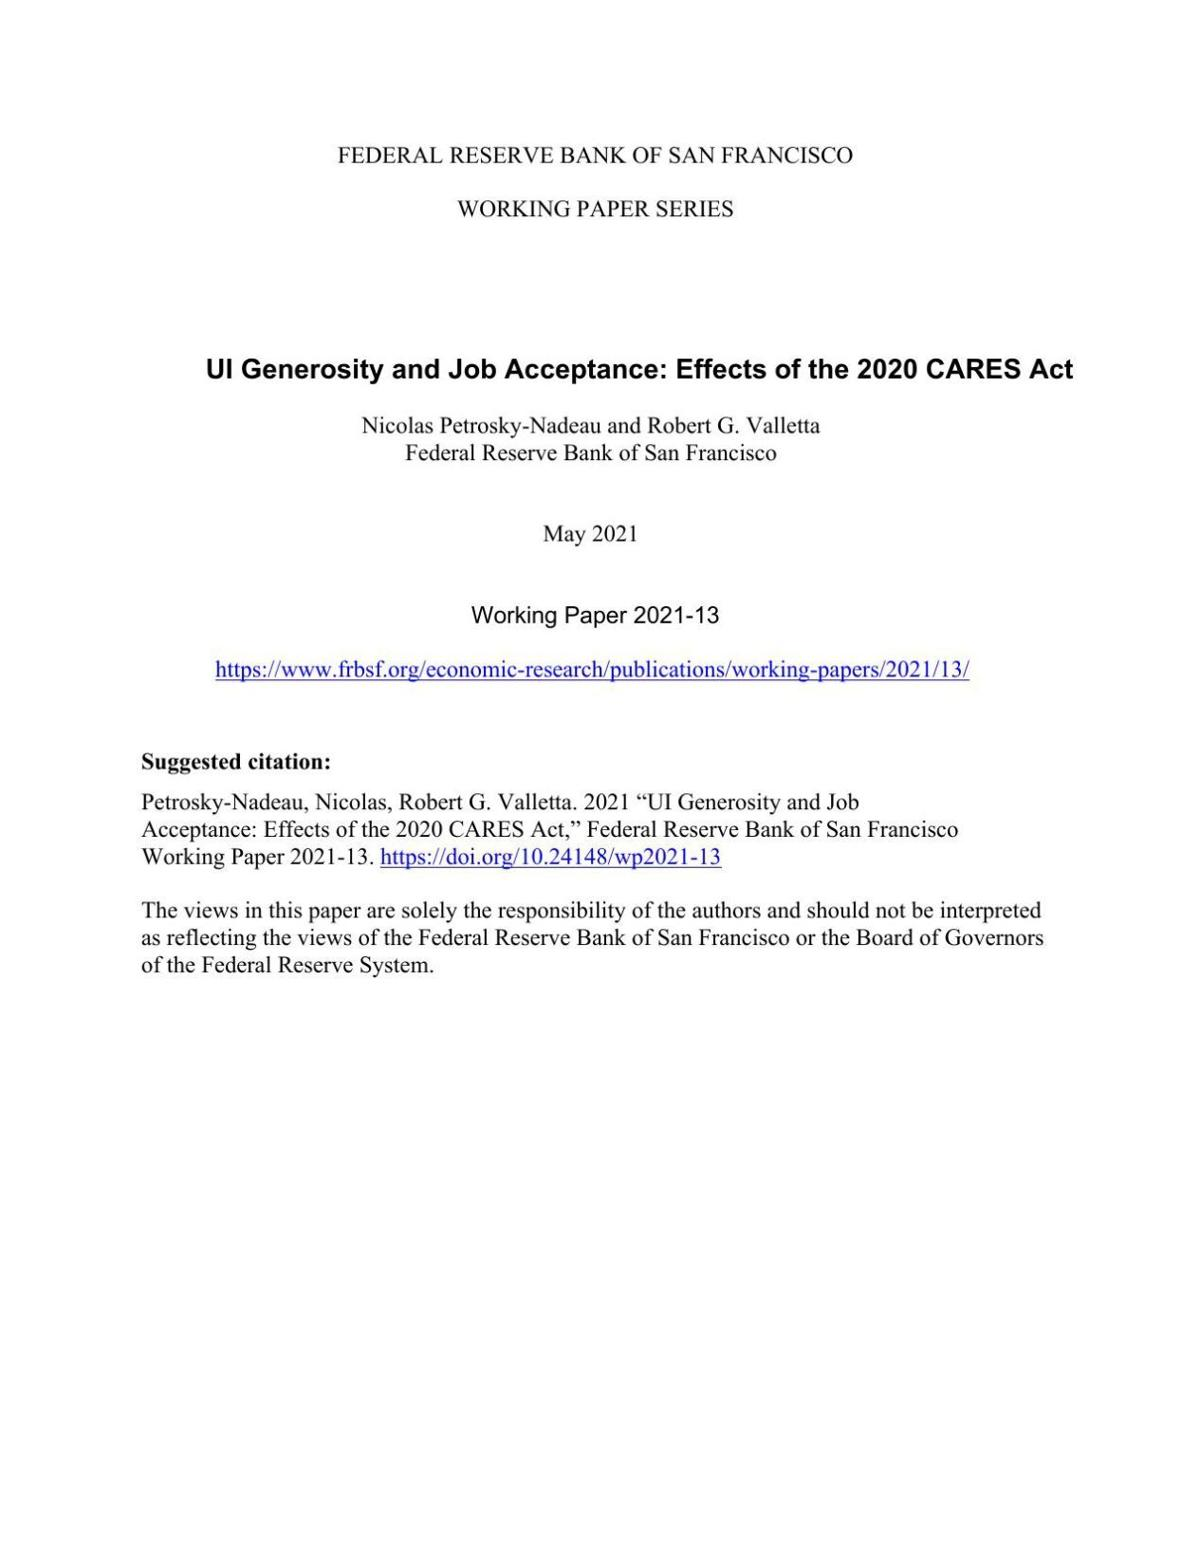 UI Generosity and Job Acceptance: Effects of the 2020 CARES Act